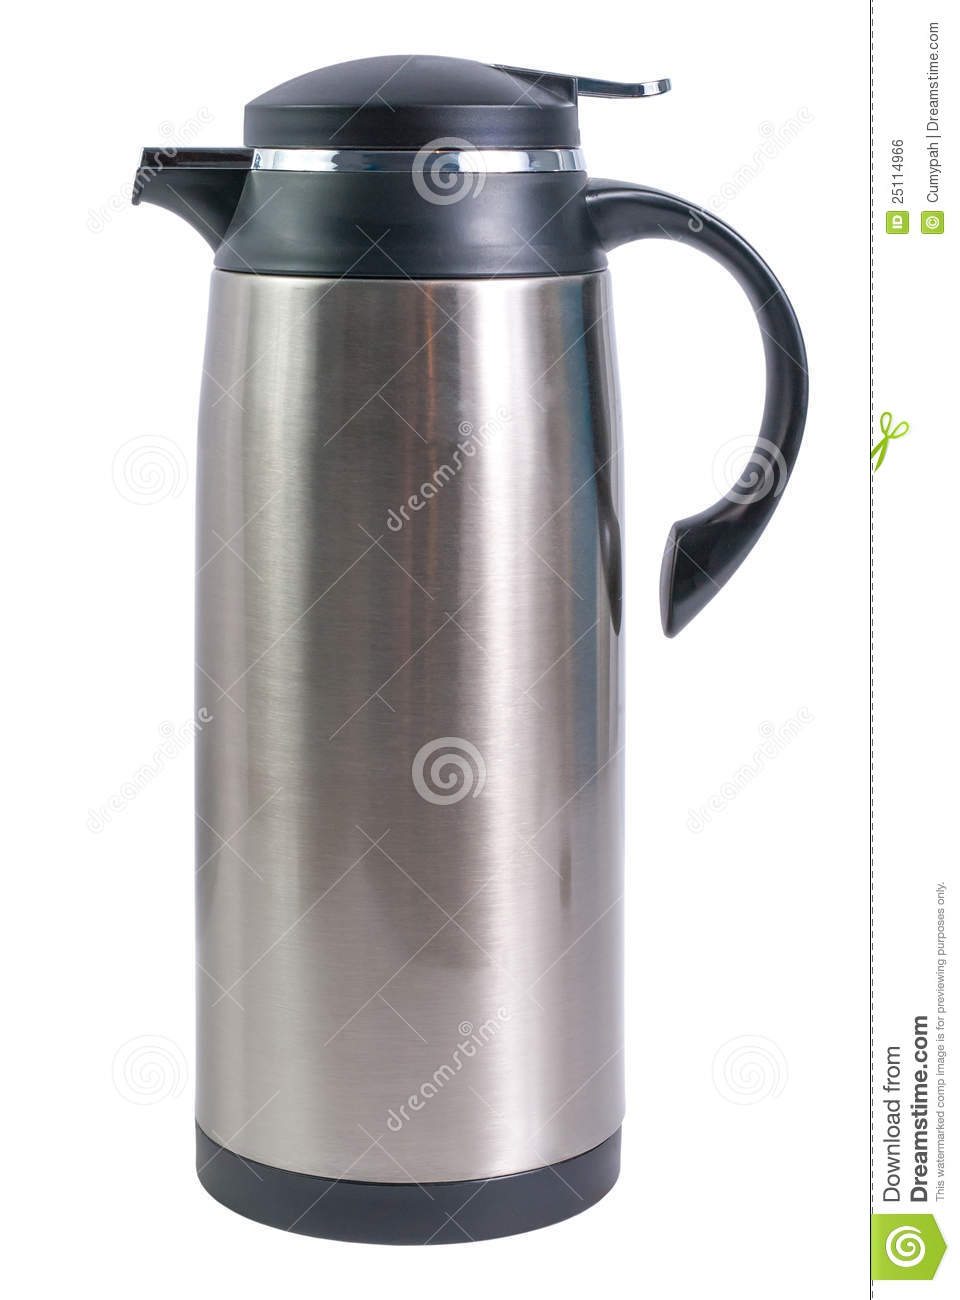 Thermo Flask For Hot Drinks Royalty Free Stock Image - Image: 25114966